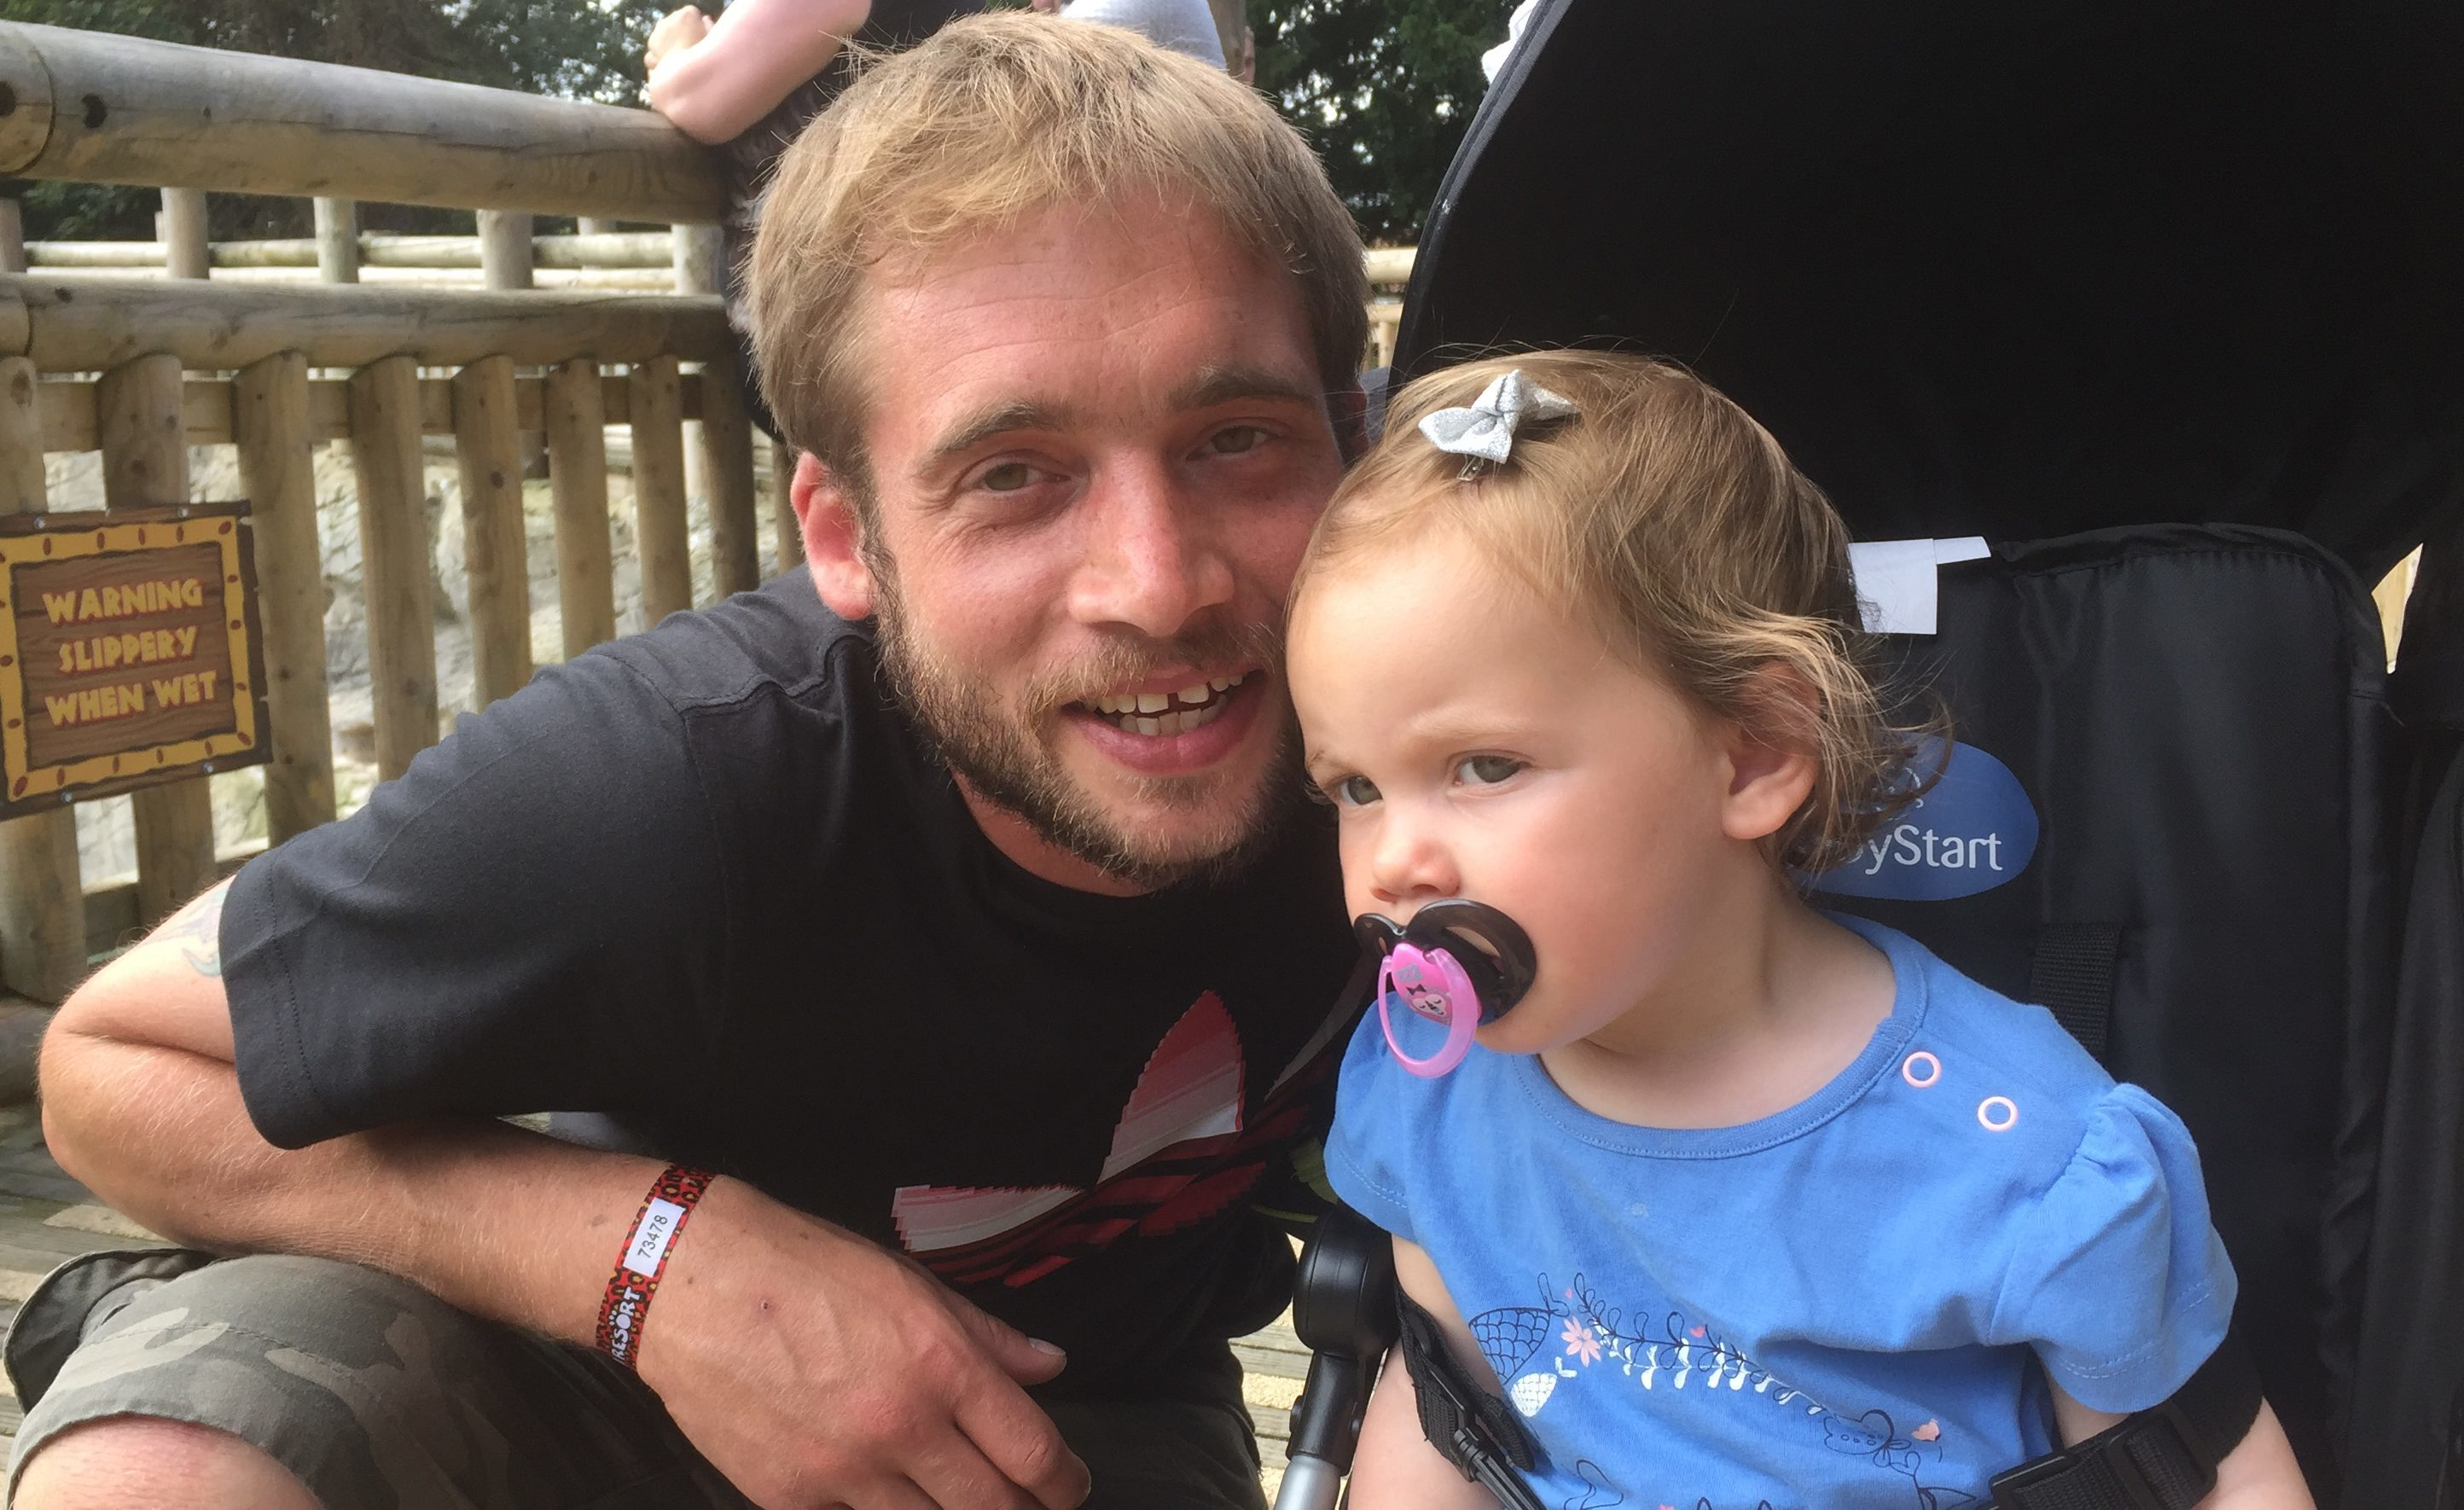 Lyall Gray lost his daughter Abbie